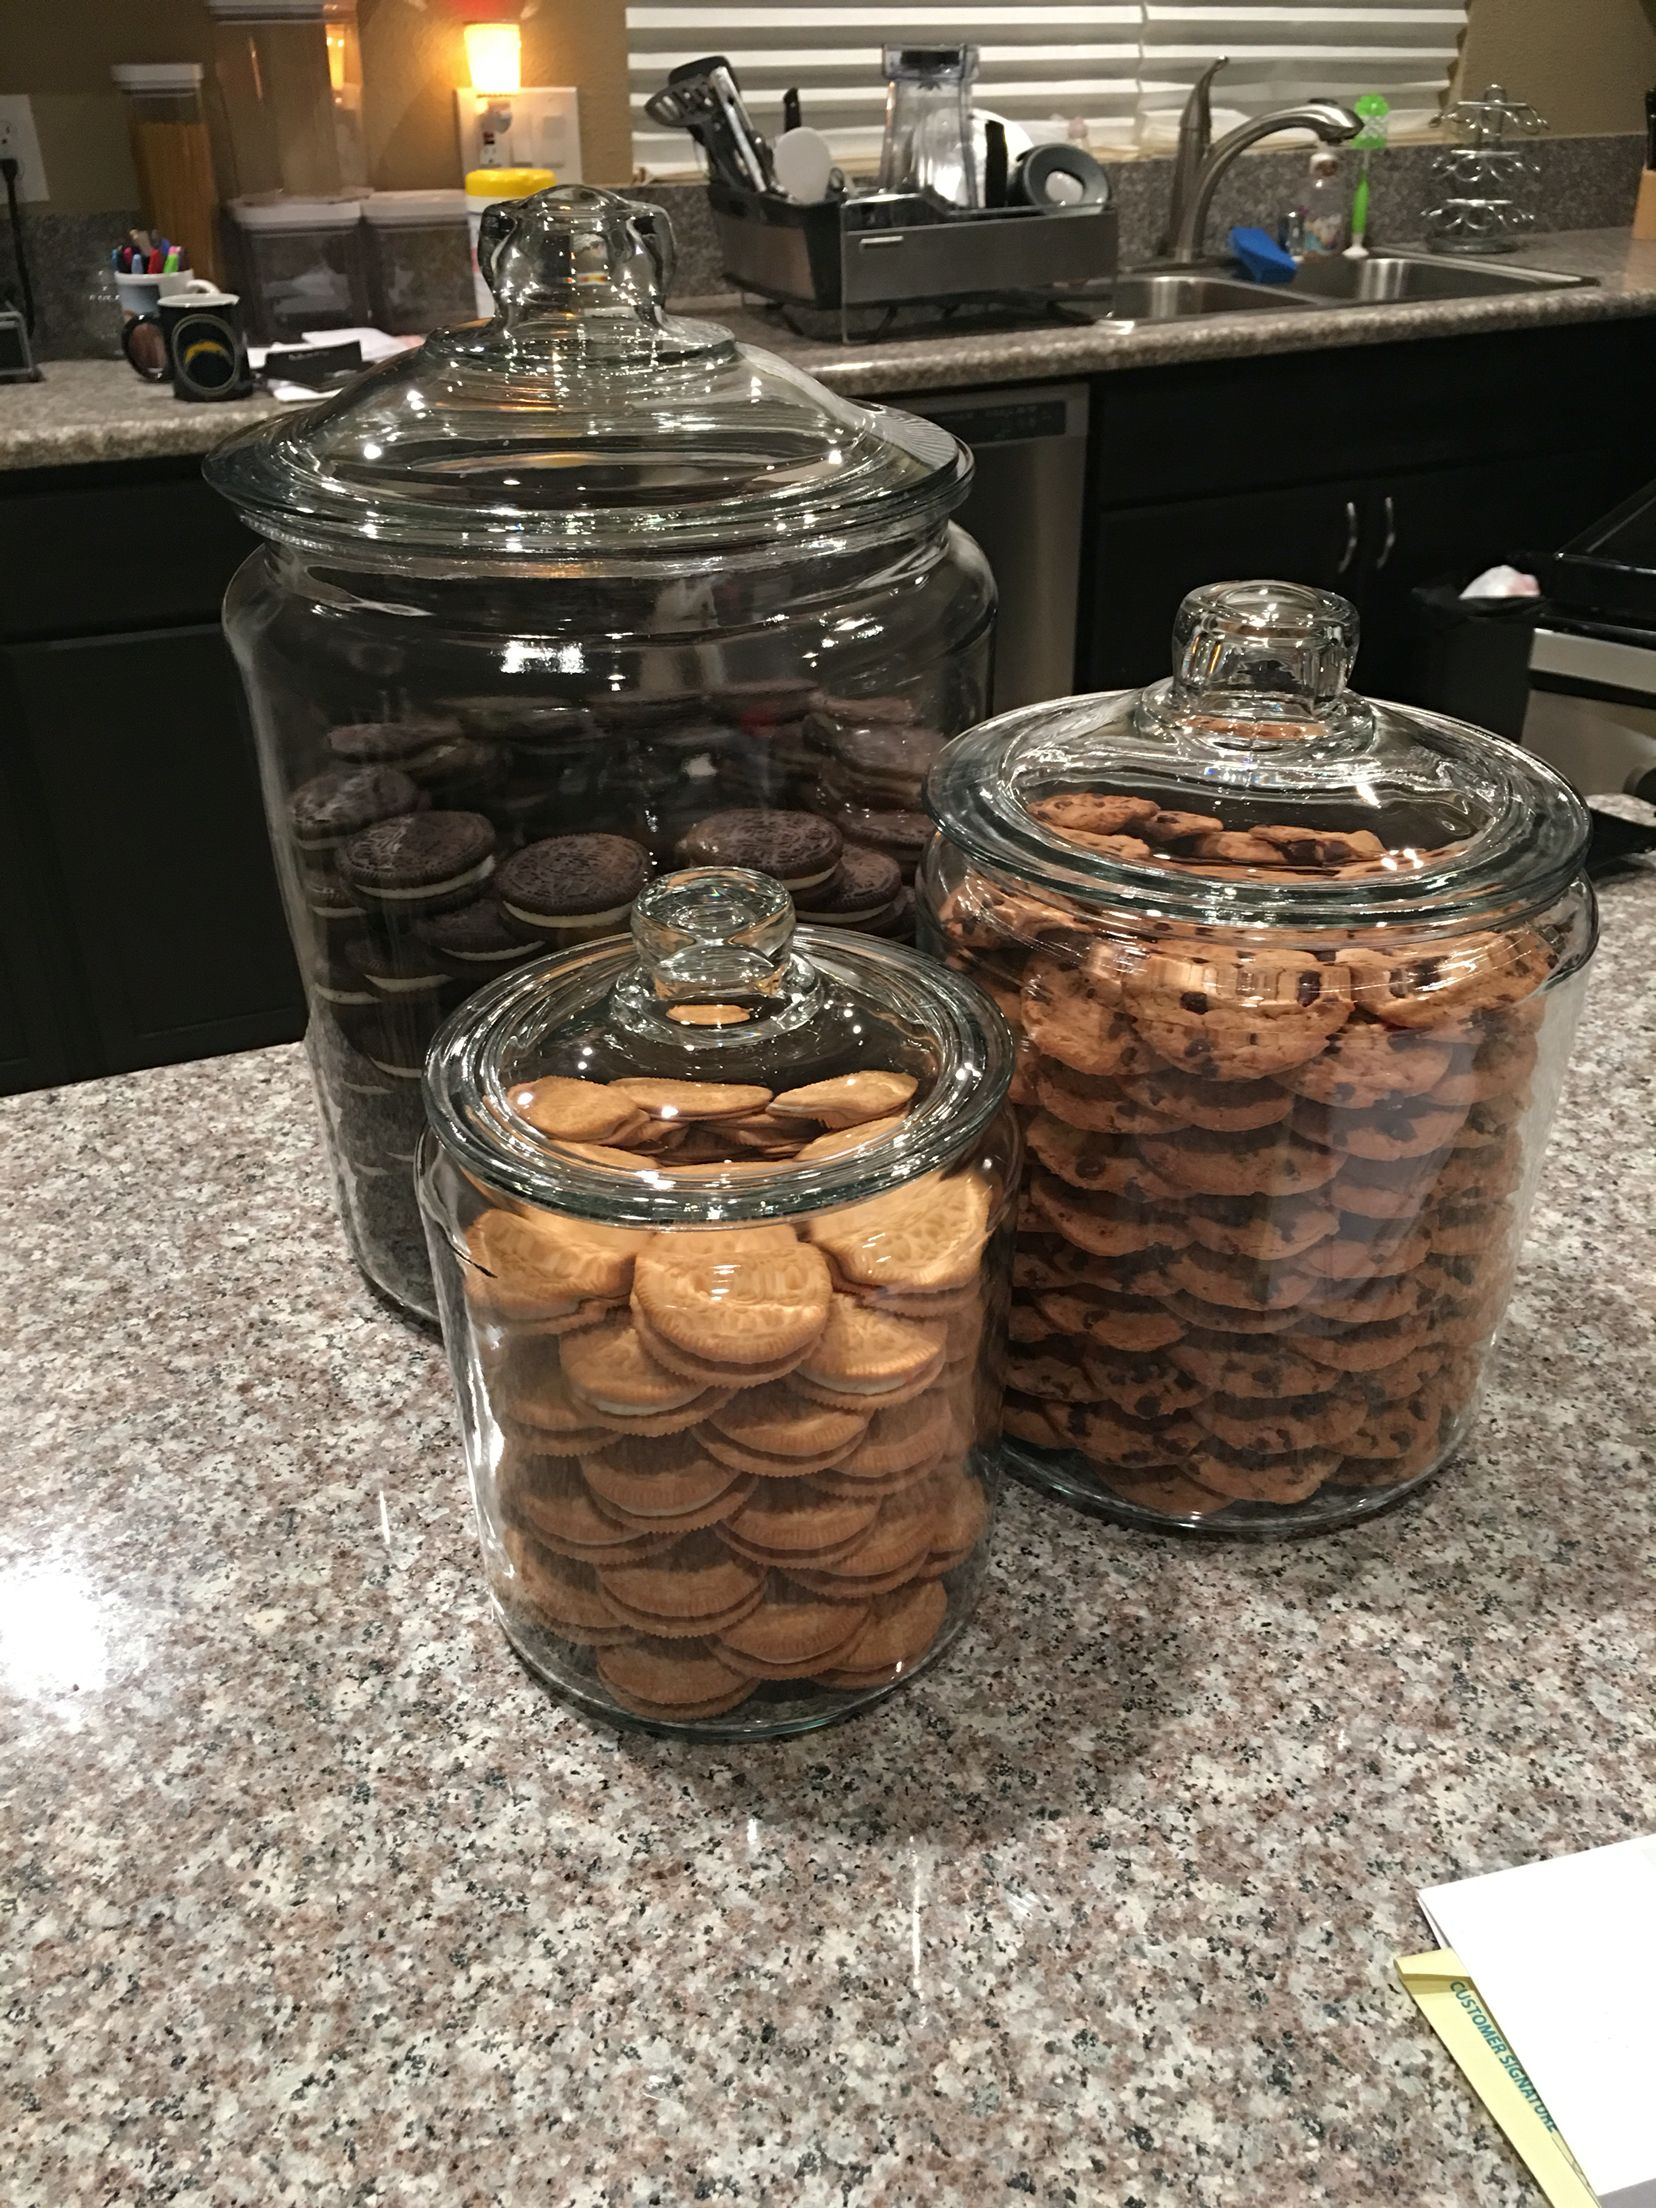 Khloe Kardashian Cookie Jar Delectable Pour La Façon De Placer Les Biscuits  Home  Pinterest  Cat Inspiration Design